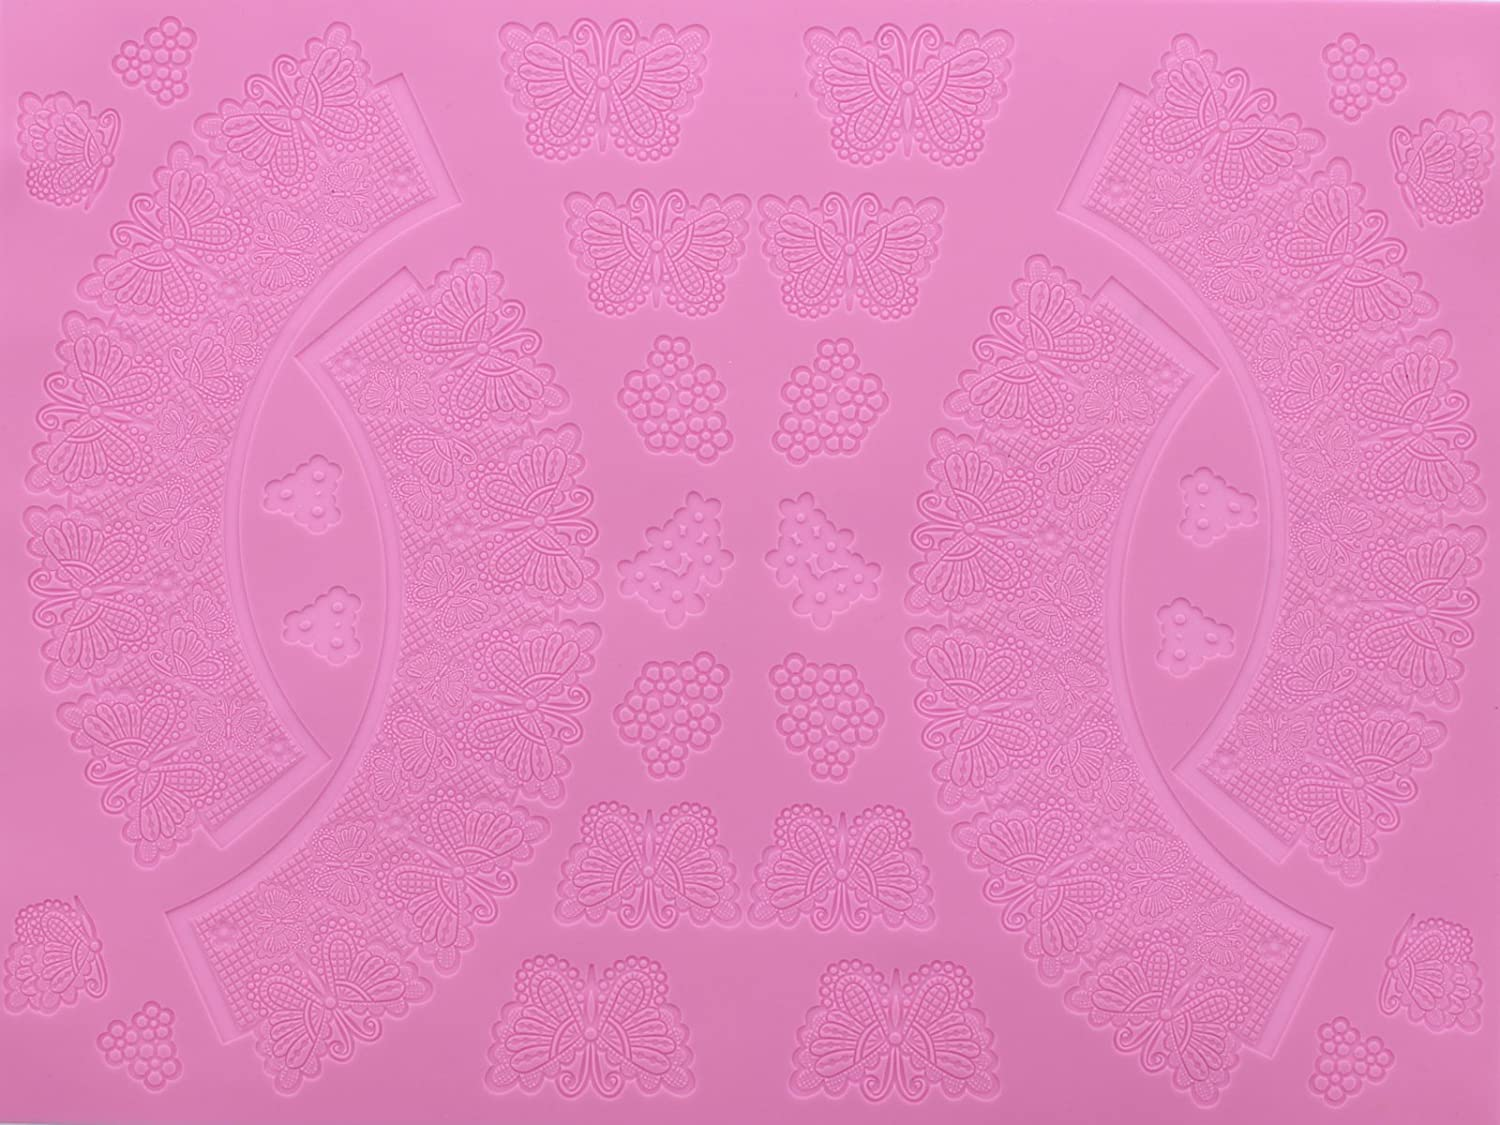 Mold for Edible Sugar Lace by Claire Bowman Silicone DAMASK 3D CAKE LACE Mat